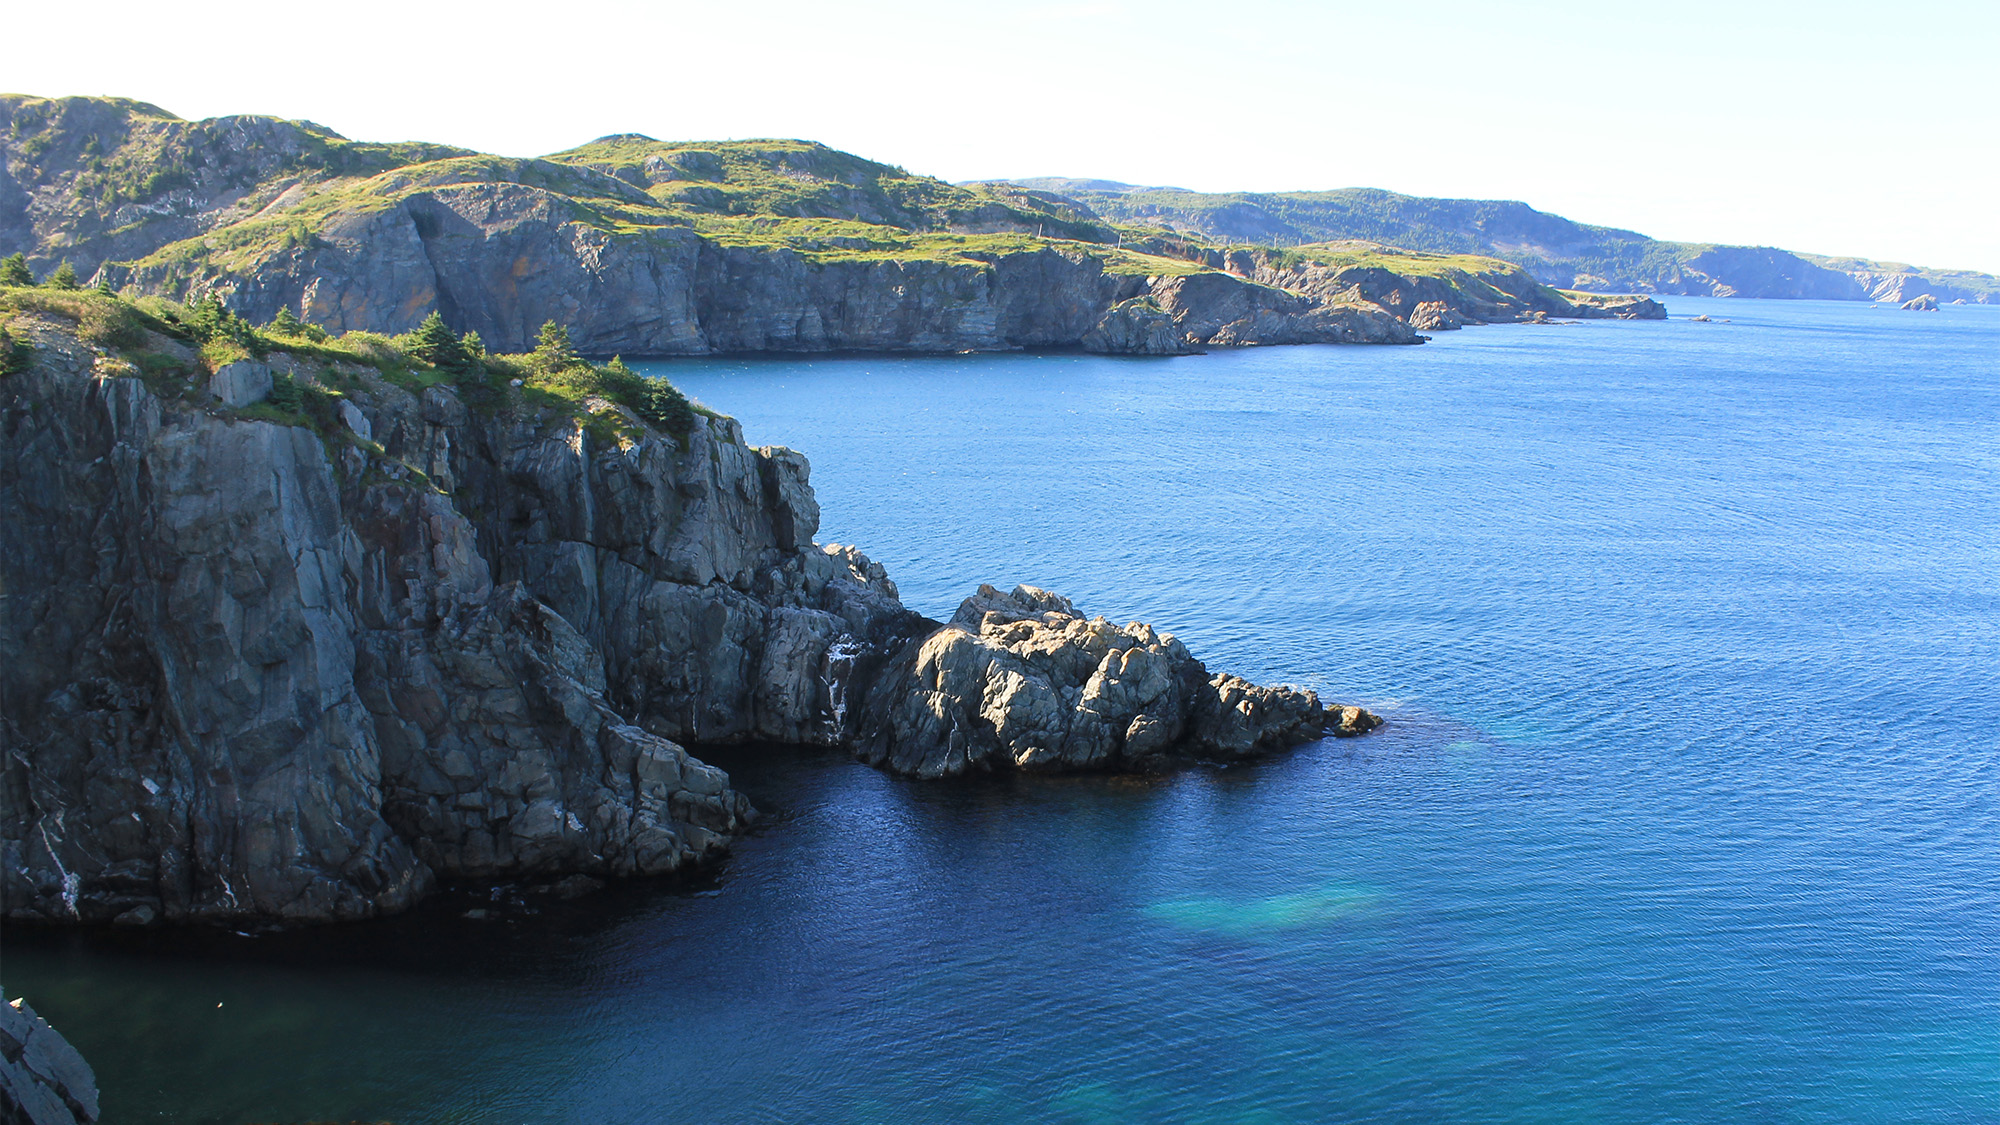 birds eye view of clear blue waters and jagged rocks